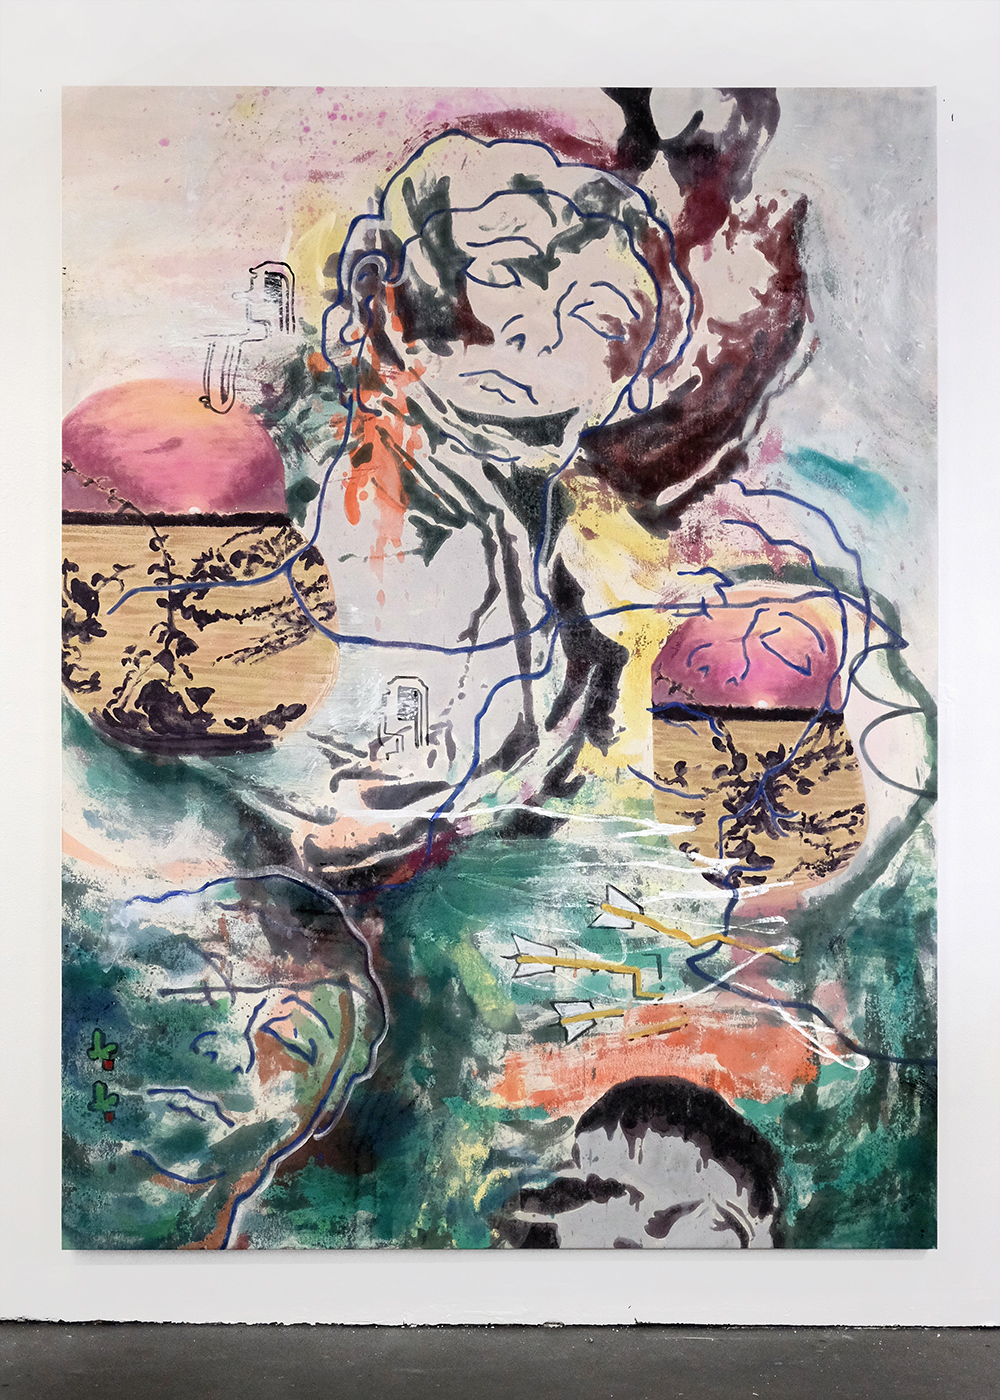 Chris Hood,  Vita Sueno , 2018, Alkyd on canvas, 91 x 70 inches